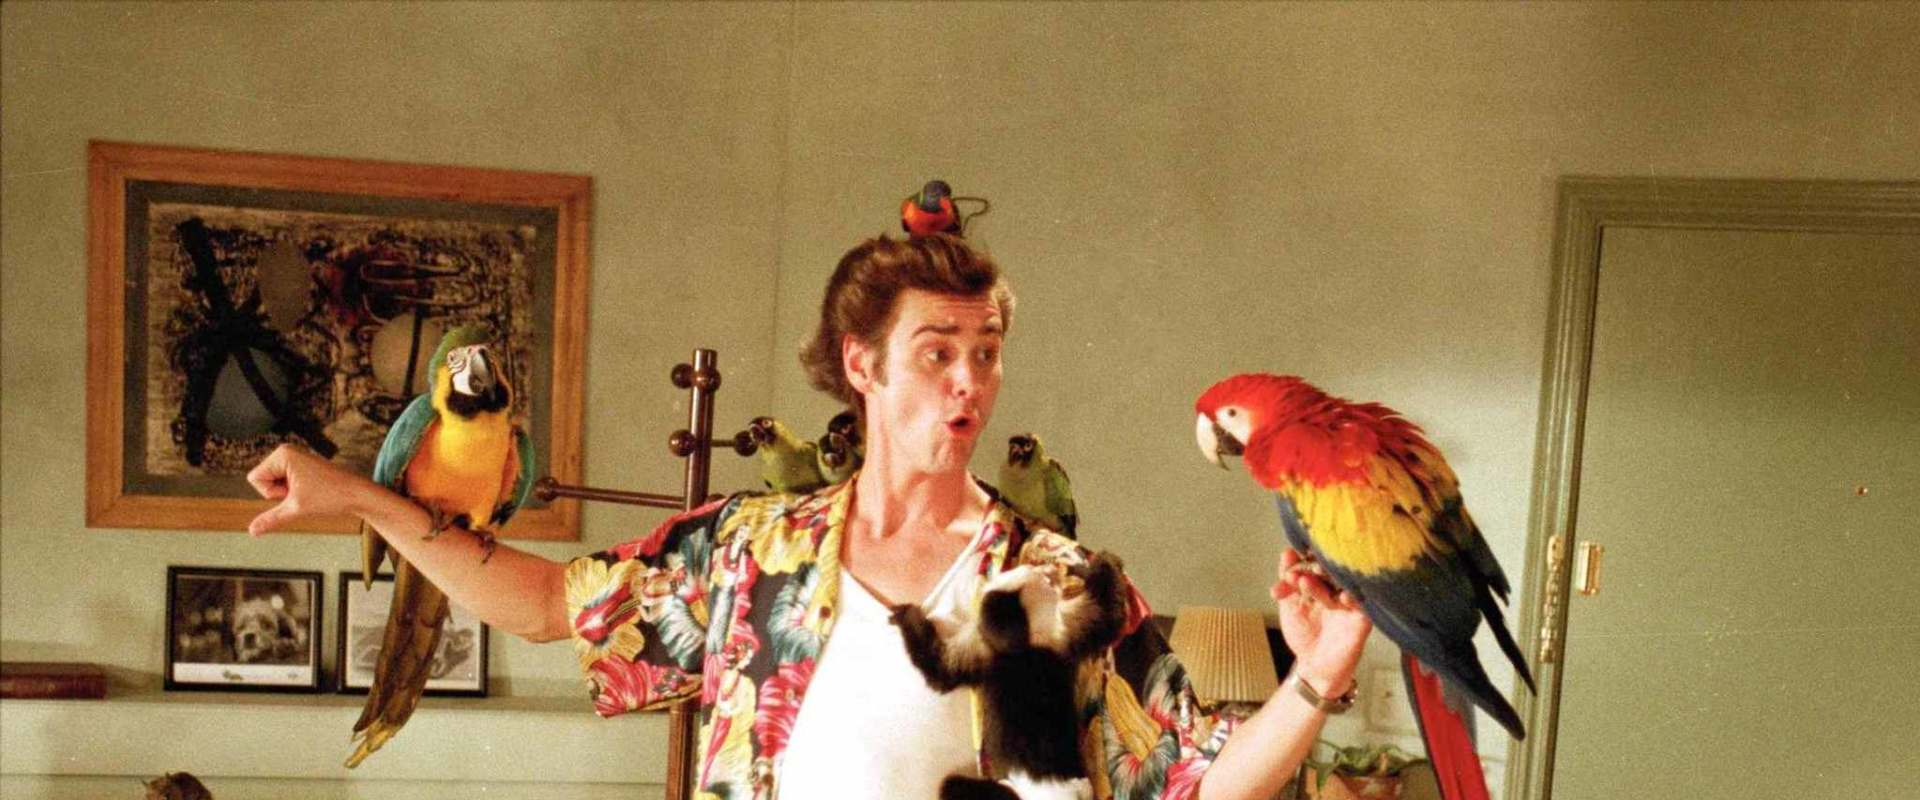 Ace Ventura: Pet Detective background 2